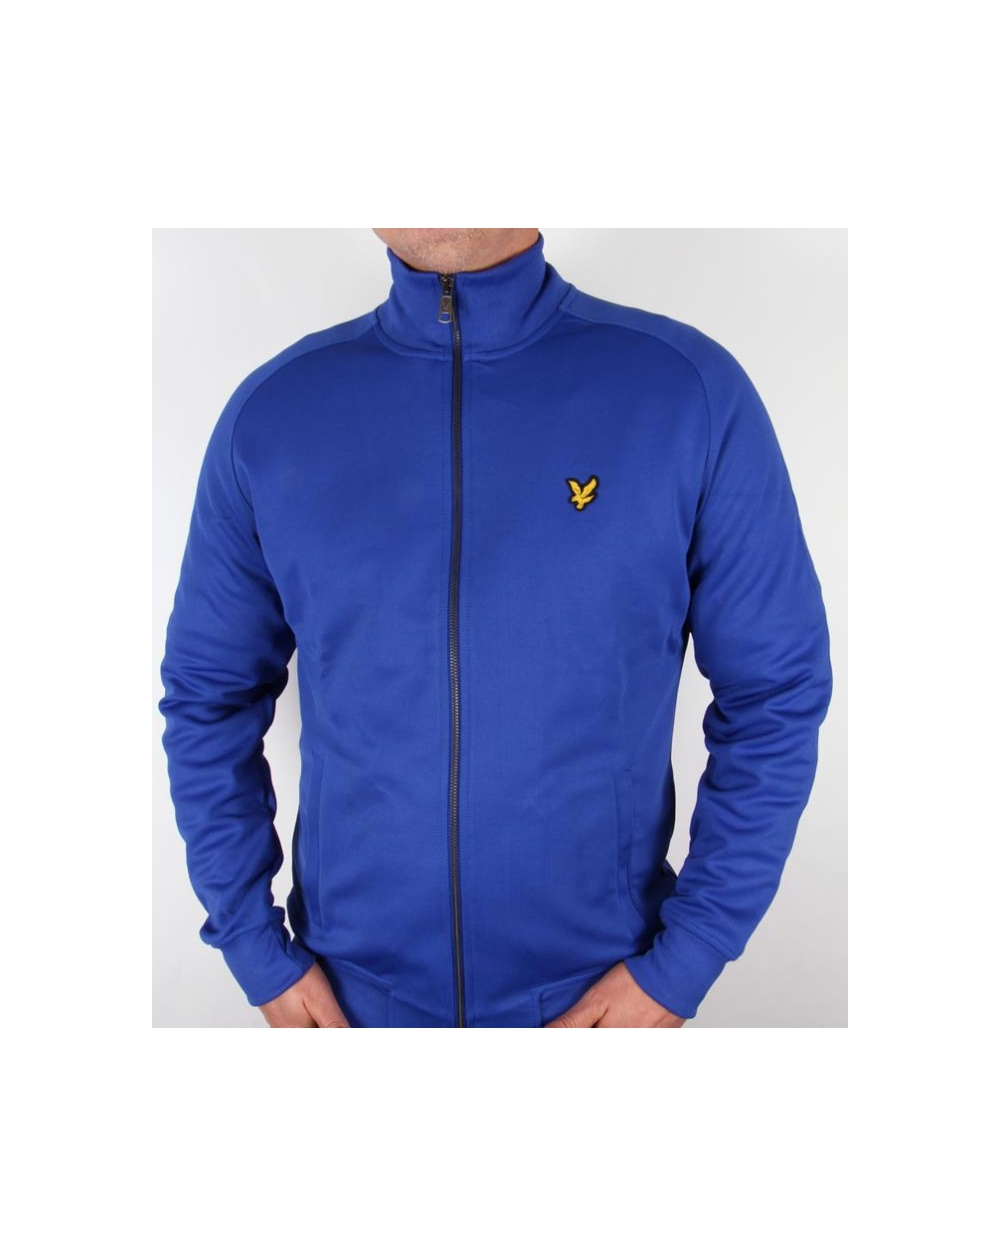 lyle and scott track jacket duke blue lyle and scott tracksuit top. Black Bedroom Furniture Sets. Home Design Ideas